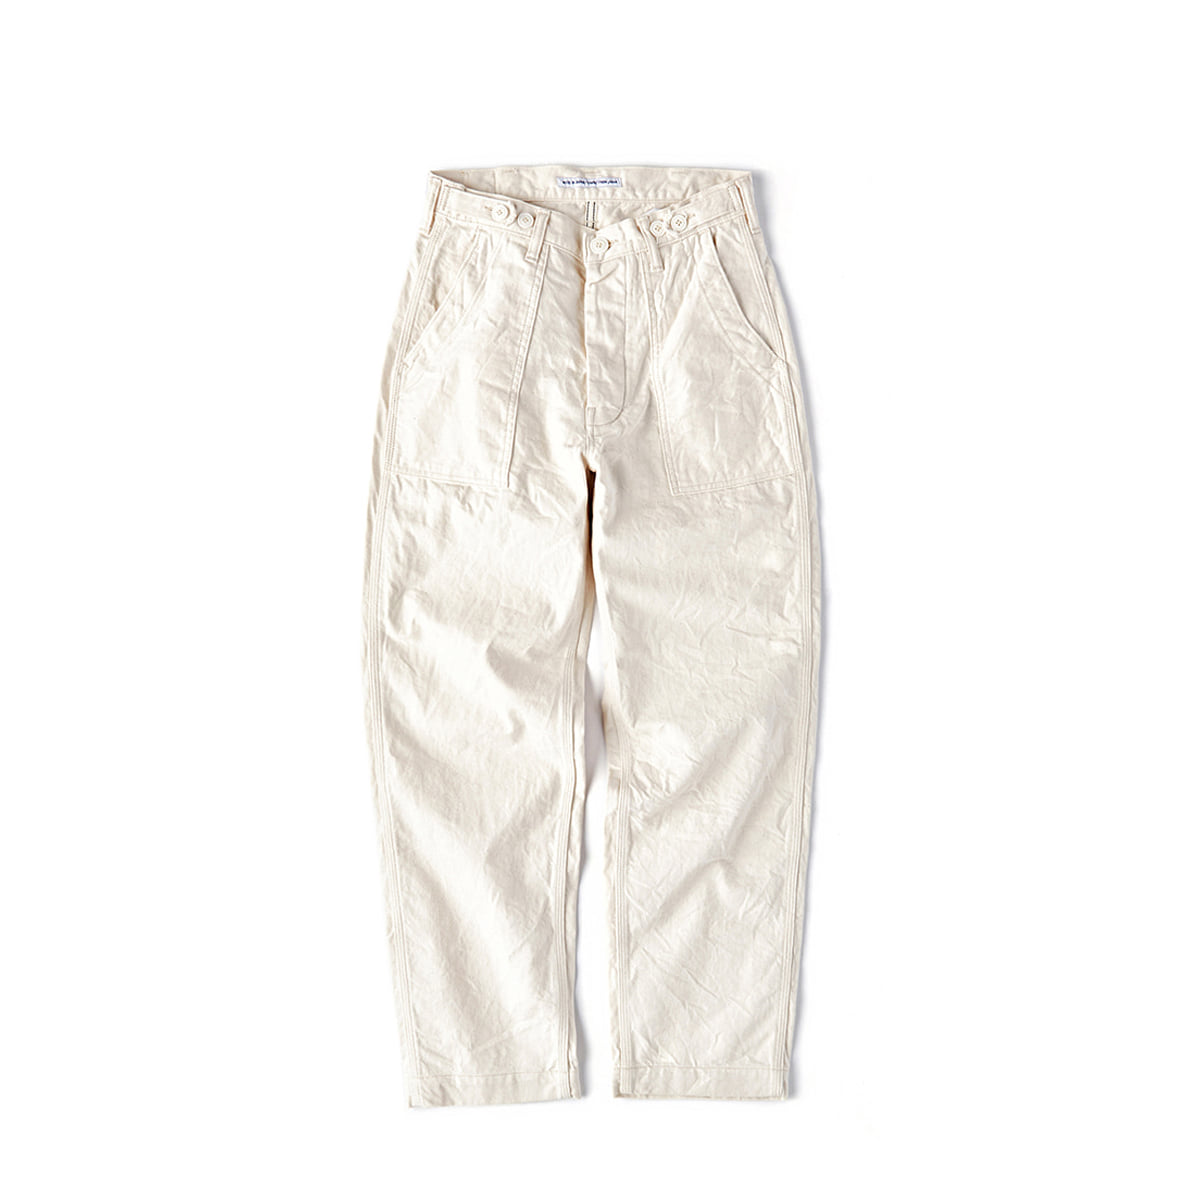 CWE-003 4POCKETS ECRU FATIGUE PANTS